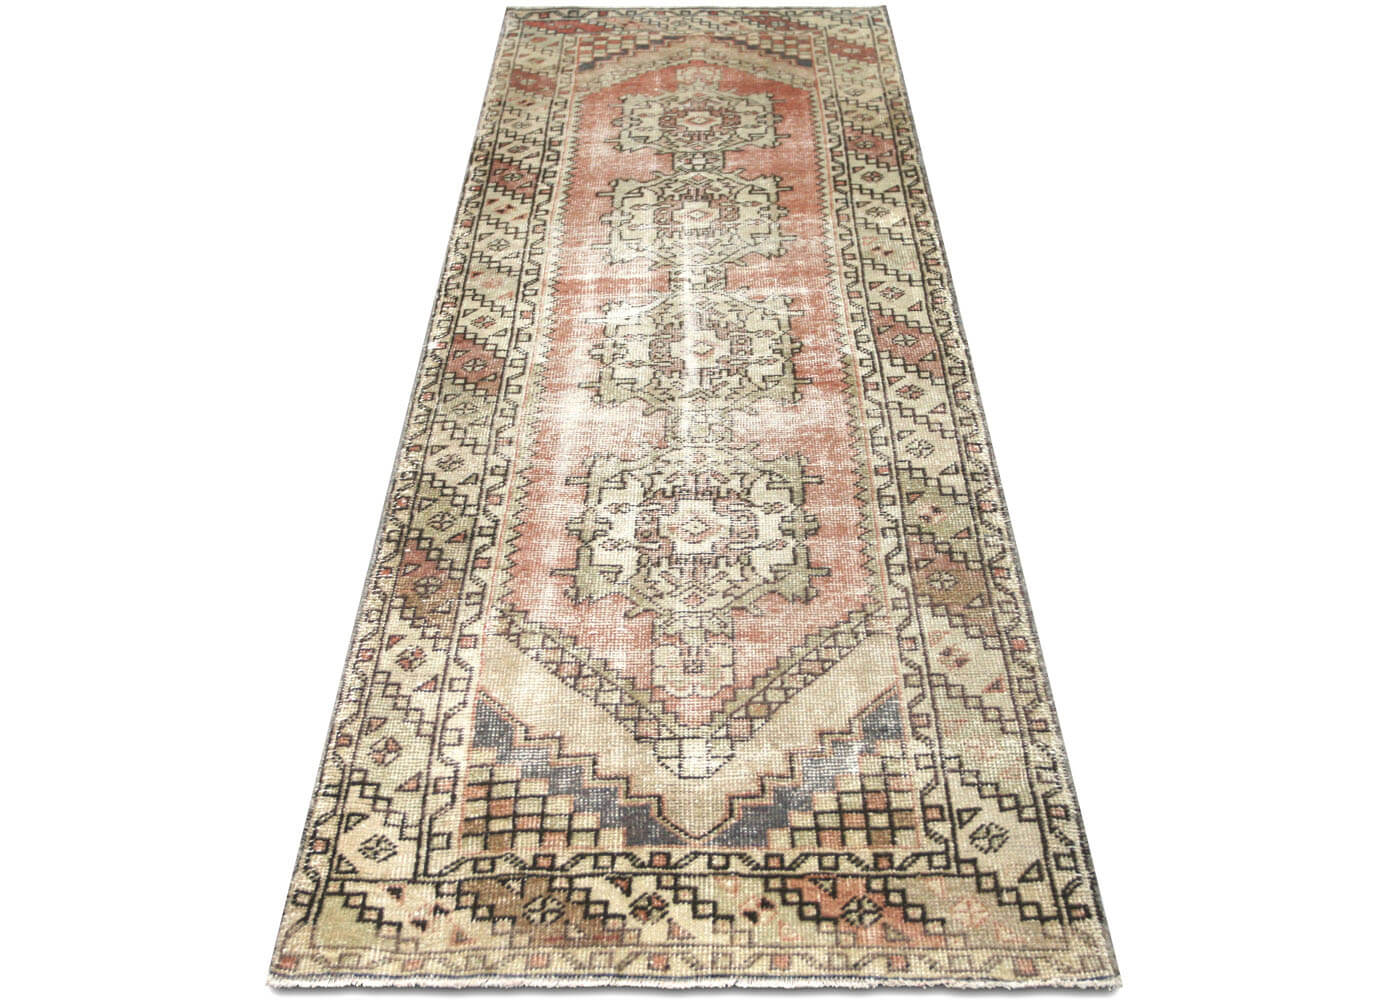 Vintage Turkish Oushak Runner - 3' x 9'4""